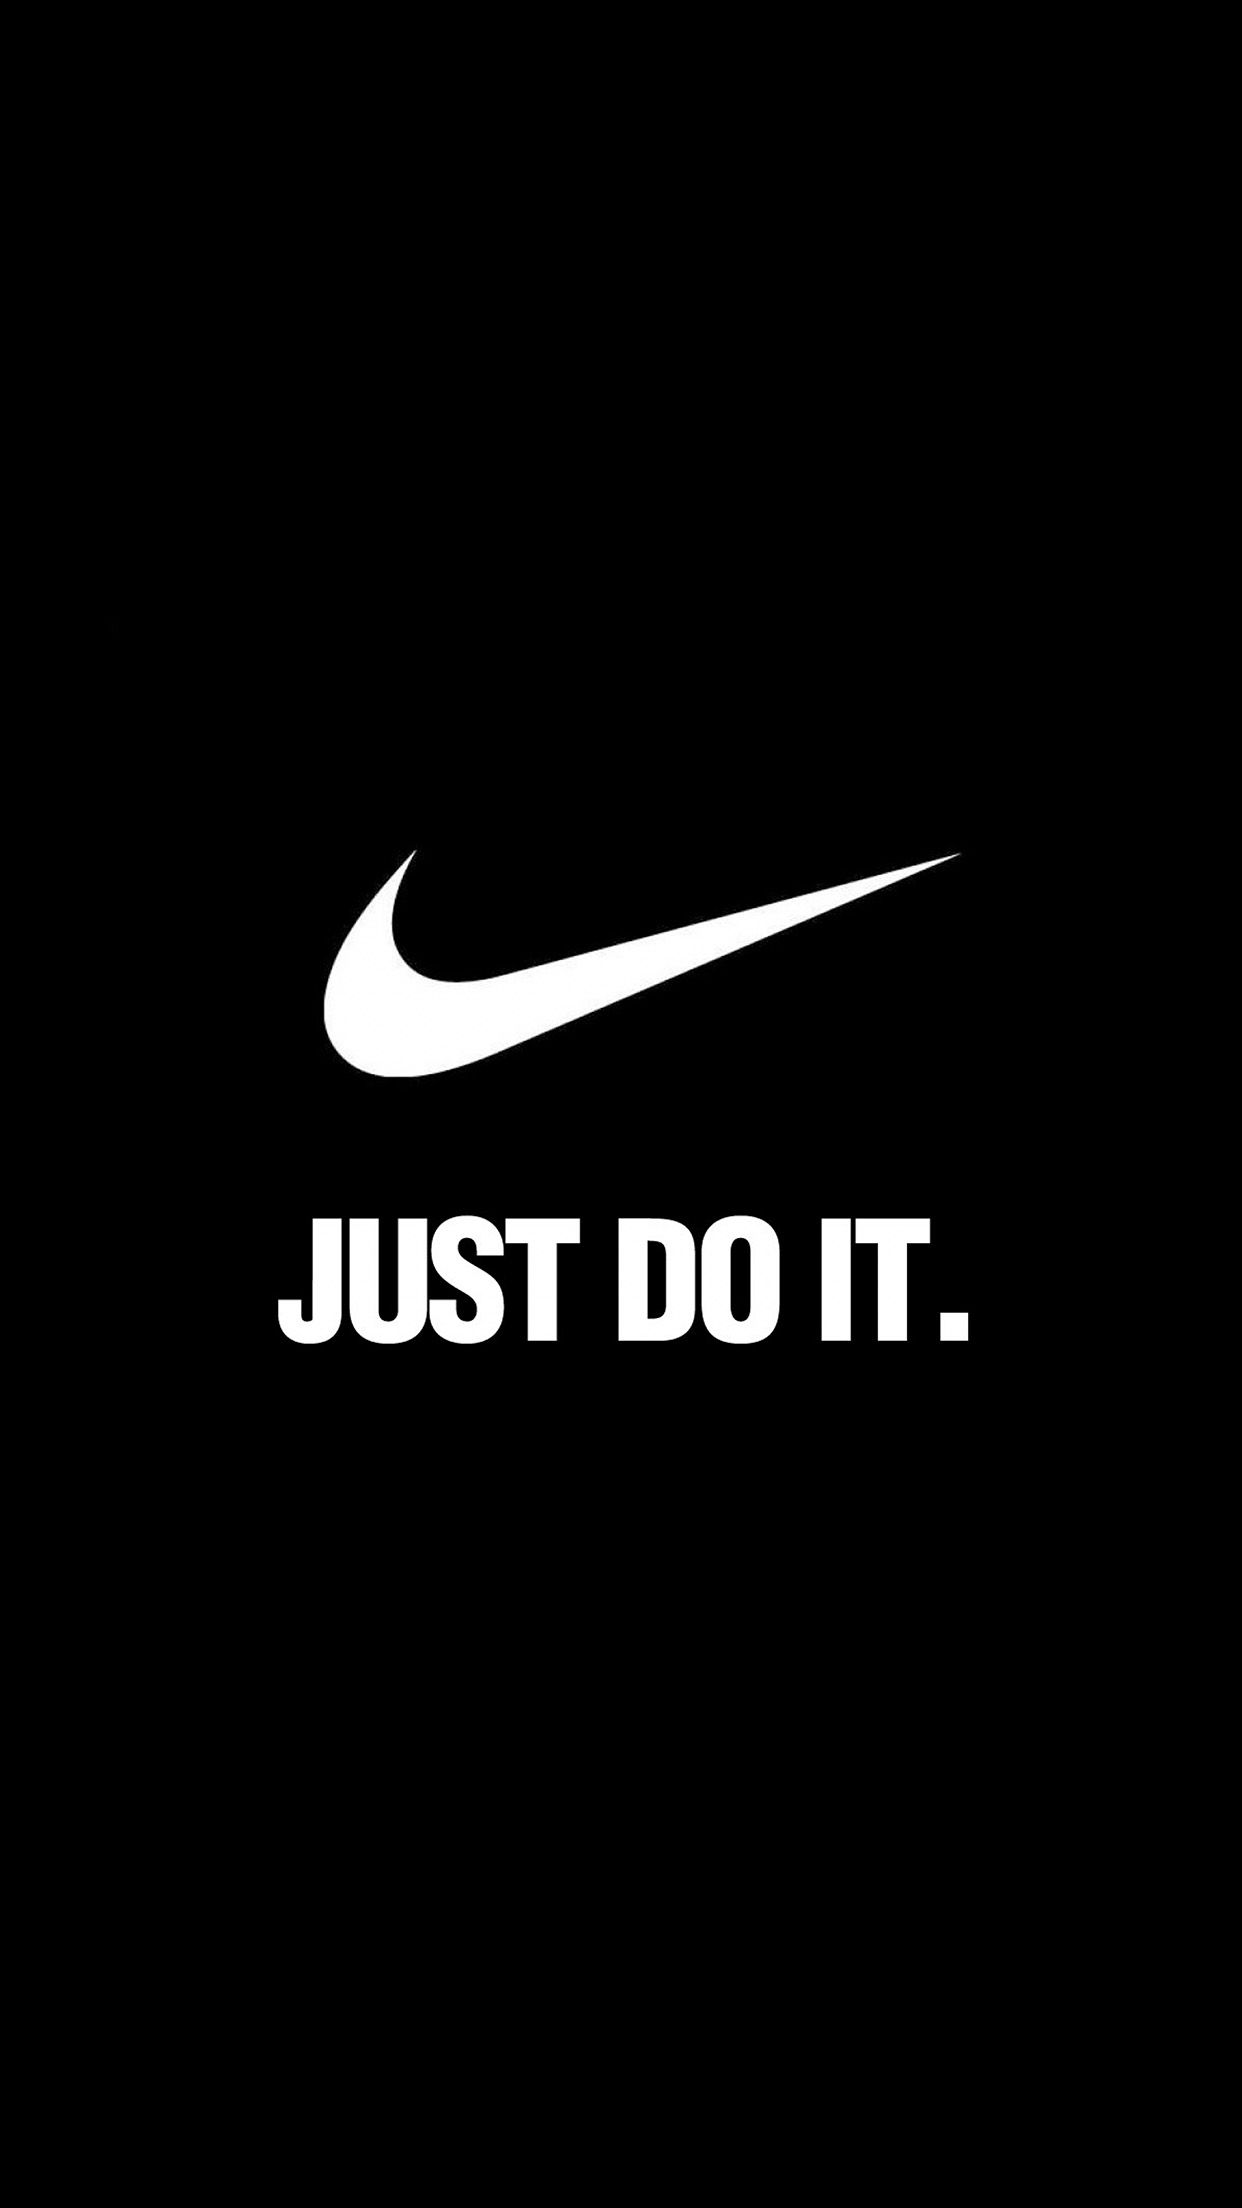 Tap And Get The Free App Logo Nike Brand Just Do It Motivation Sport Minimalism Black White Nike Wallpaper Iphone Nike Wallpaper Nike Wallpaper Backgrounds